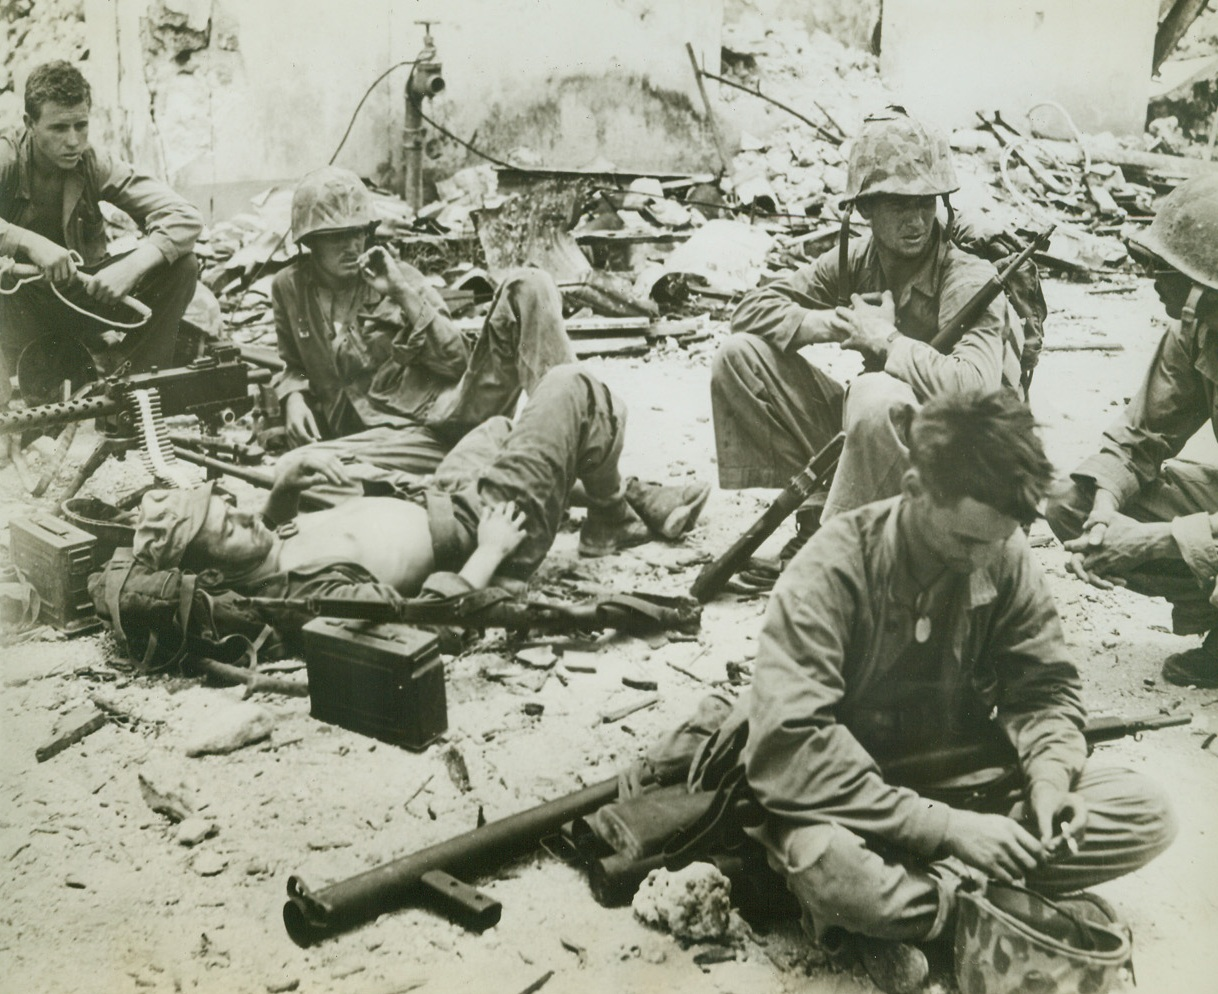 No Targets—Gun Crew Rests, 8/11/1944. AGANA, GUAM – When they ran out of Japs to shoot at on Agana, these gun crew members laid down their arms to relax for awhile, but they leave the cartridge belt in their gun—just in case. Left to right: Pfc. W. C. Dean, Meridian, Miss.; Pfc. R. A. Rouse, Cincinnati, Oh.; Pfc. E. J. Bernier (lying down), River Rouge, Michigan; and Cpl. T. L. McHugh, Cincinnati, Oh. Men in foreground and at extreme right are unidentified. All are of the Third Marine Division Credit: ACME;